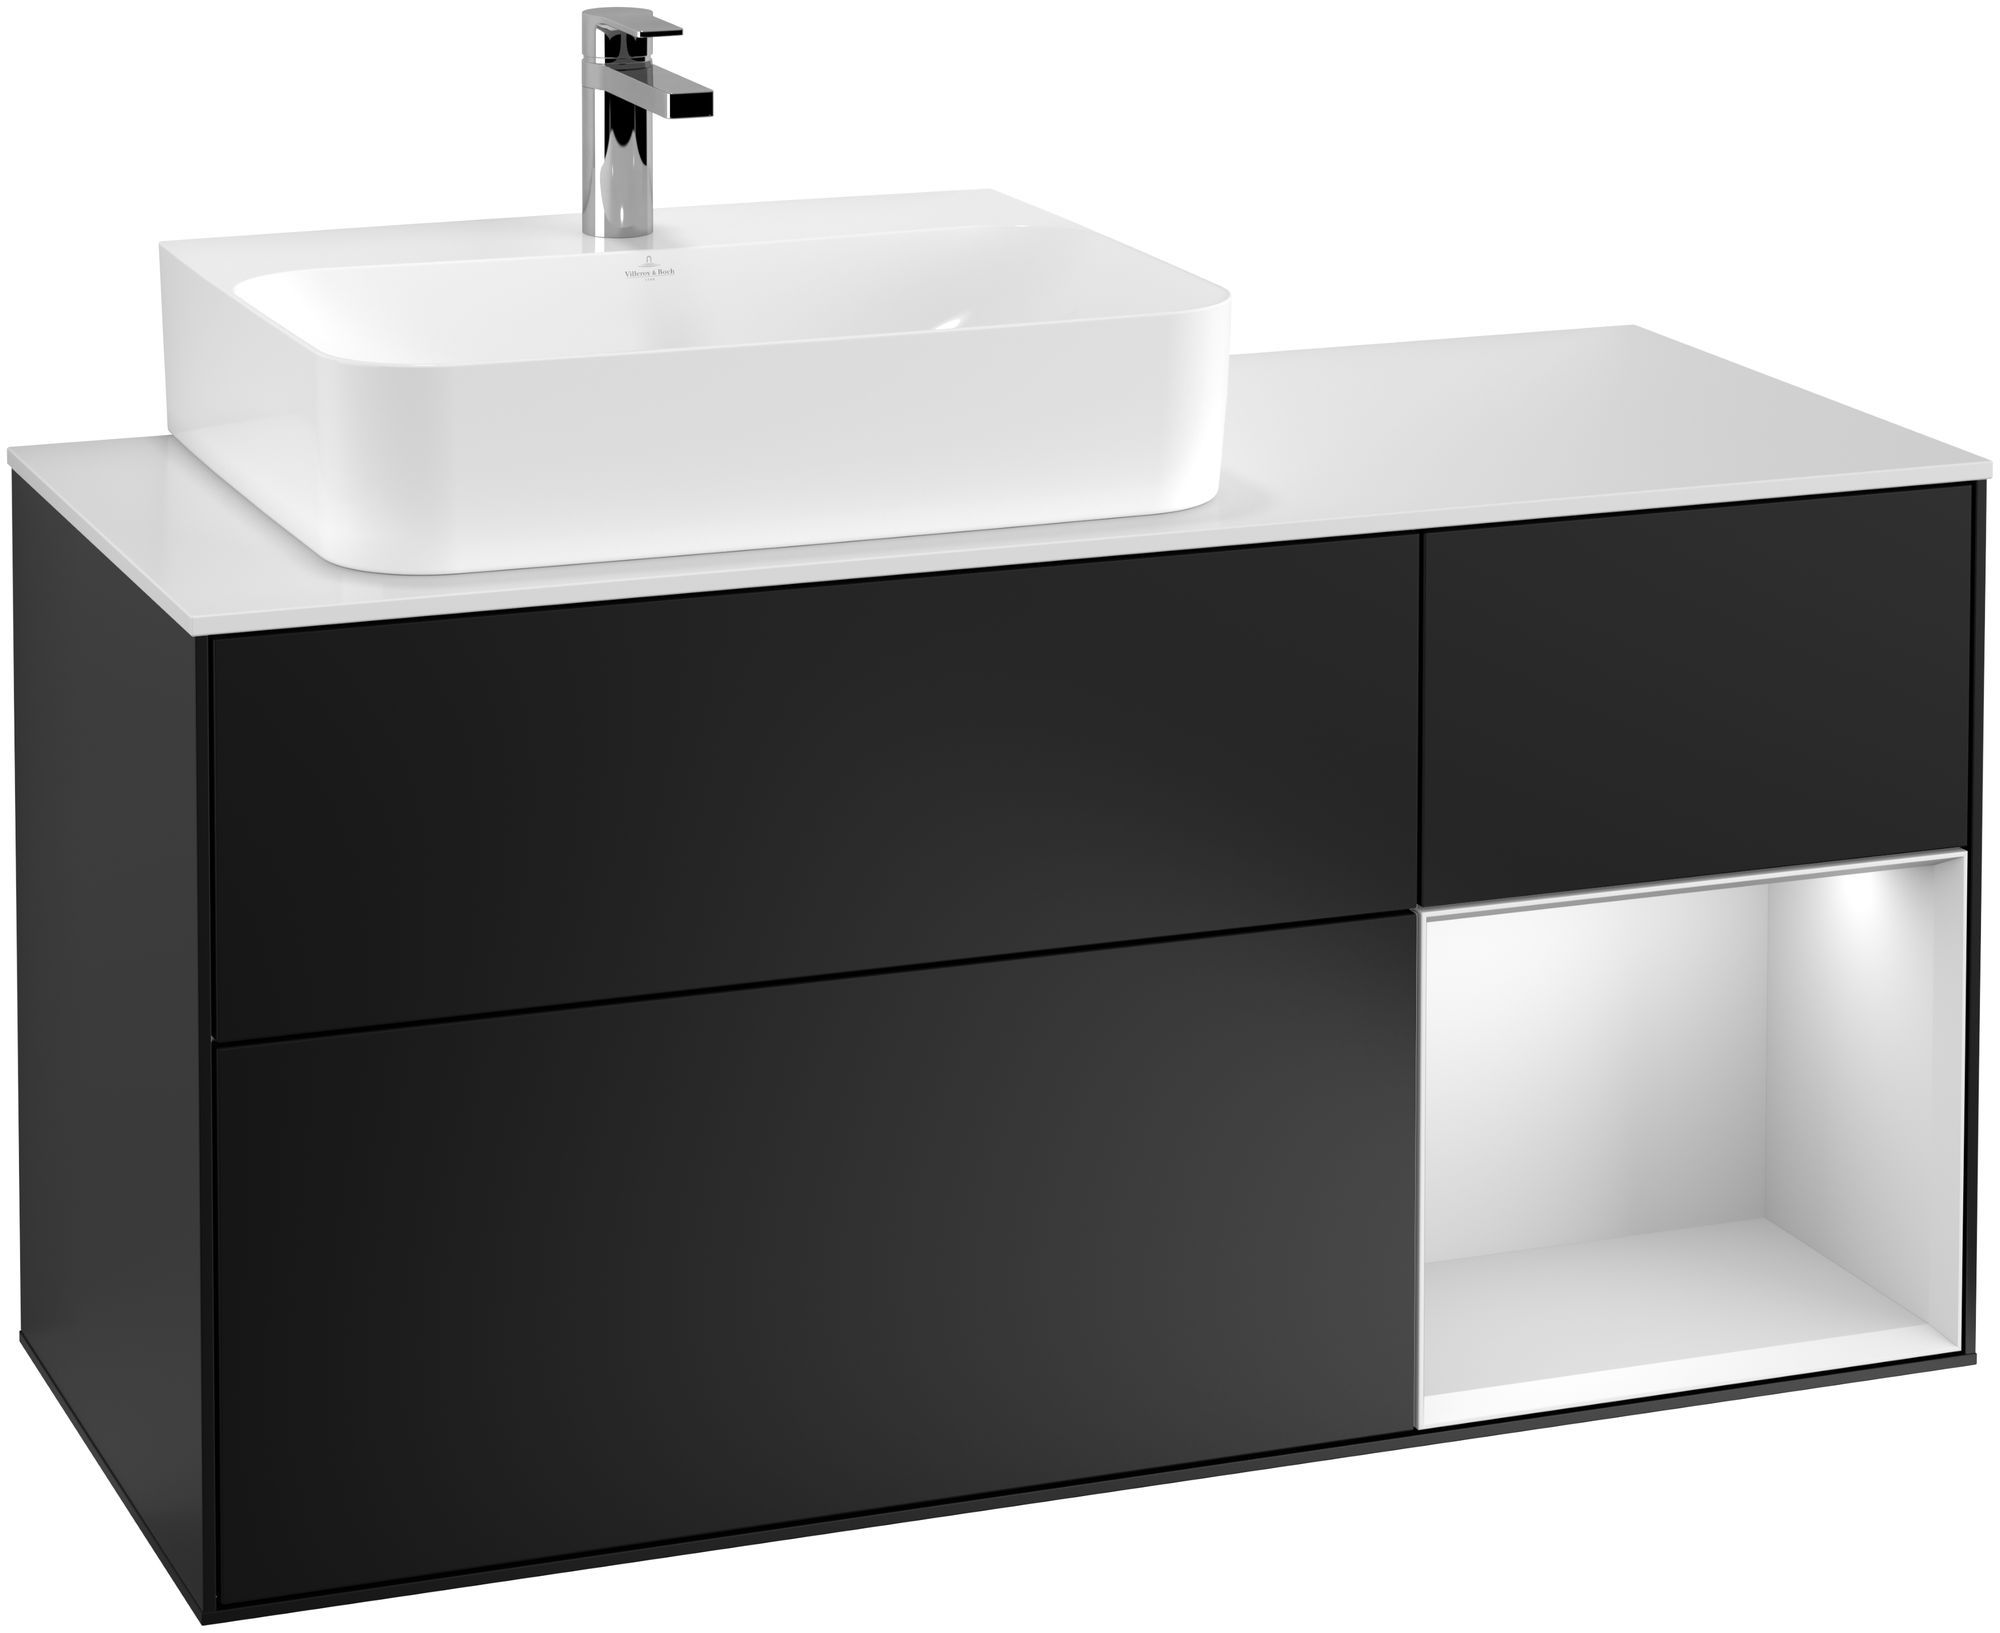 Villeroy & Boch Finion F15 Waschtischunterschrank mit Regalelement 3 Auszüge Waschtisch links LED-Beleuchtung B:120xH:60,3xT:50,1cm Front, Korpus: Black Matt Lacquer, Regal: Weiß Matt Soft Grey, Glasplatte: White Matt F151MTPD